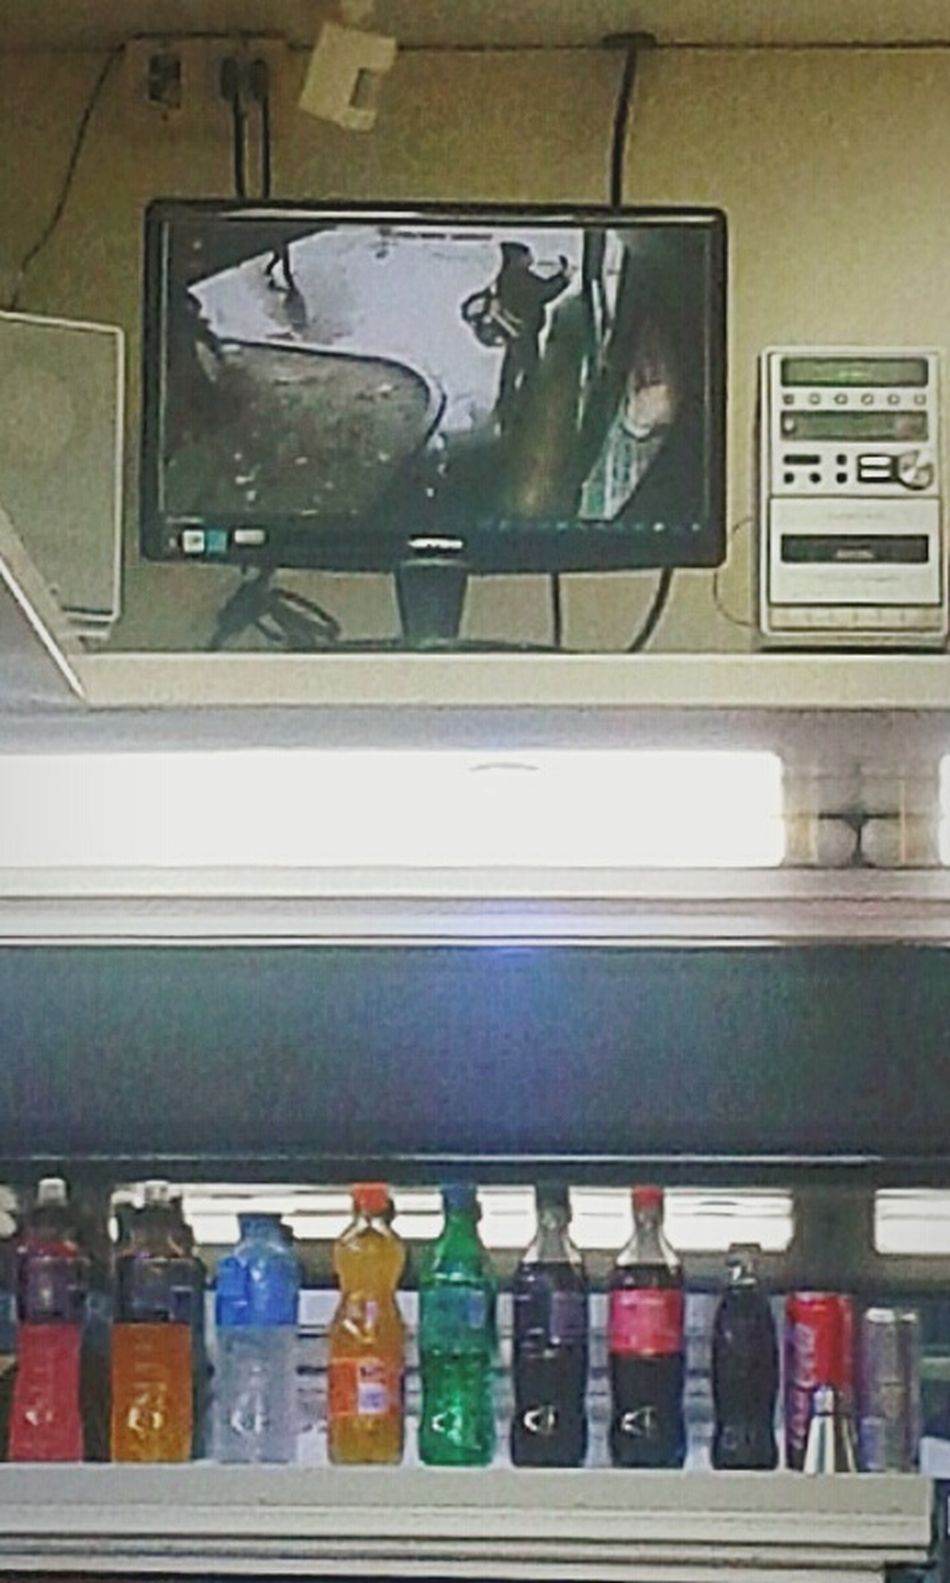 """""""Espresso - Taking a coffee and a selfie"""". That's Me drinking a coffee and taking a picture of Myself Selfies Vcc Security Cam Kiosk Espresso Bar Baretto Chiosco Soft Drinks Smartphone Photography with S3mini Eyeemfilter"""